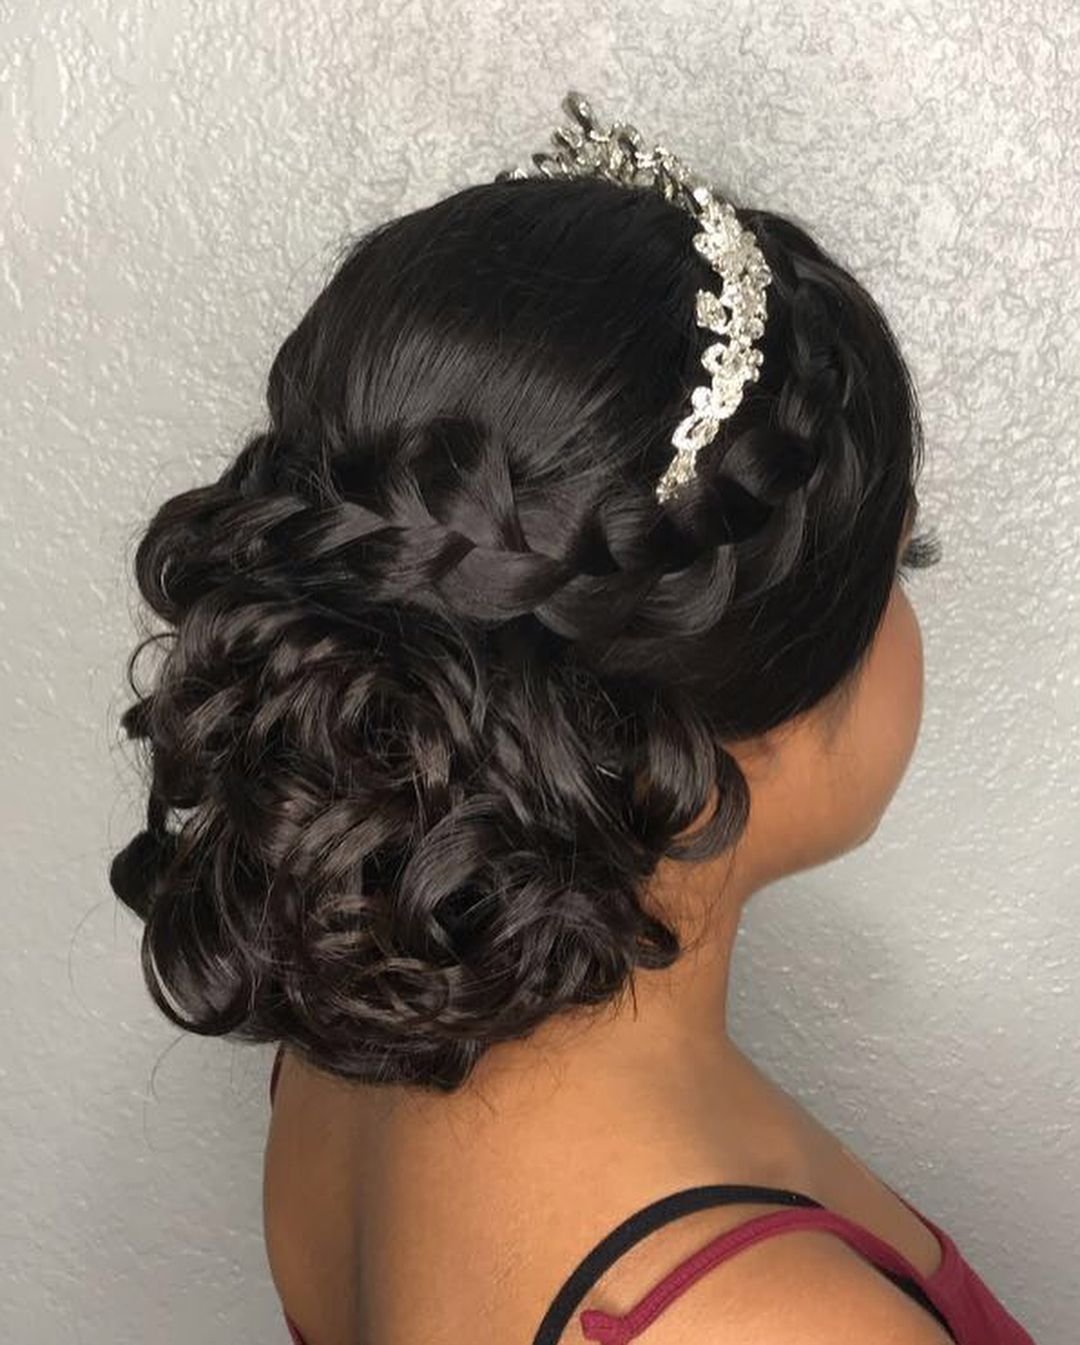 Quince Updo Love Adding A Braid To Any Hairstyle Quince Quinceanera Updo Elegant Glam Hairstyles Quince Hairstyles Long Hair Updo Sweet 15 Hairstyles